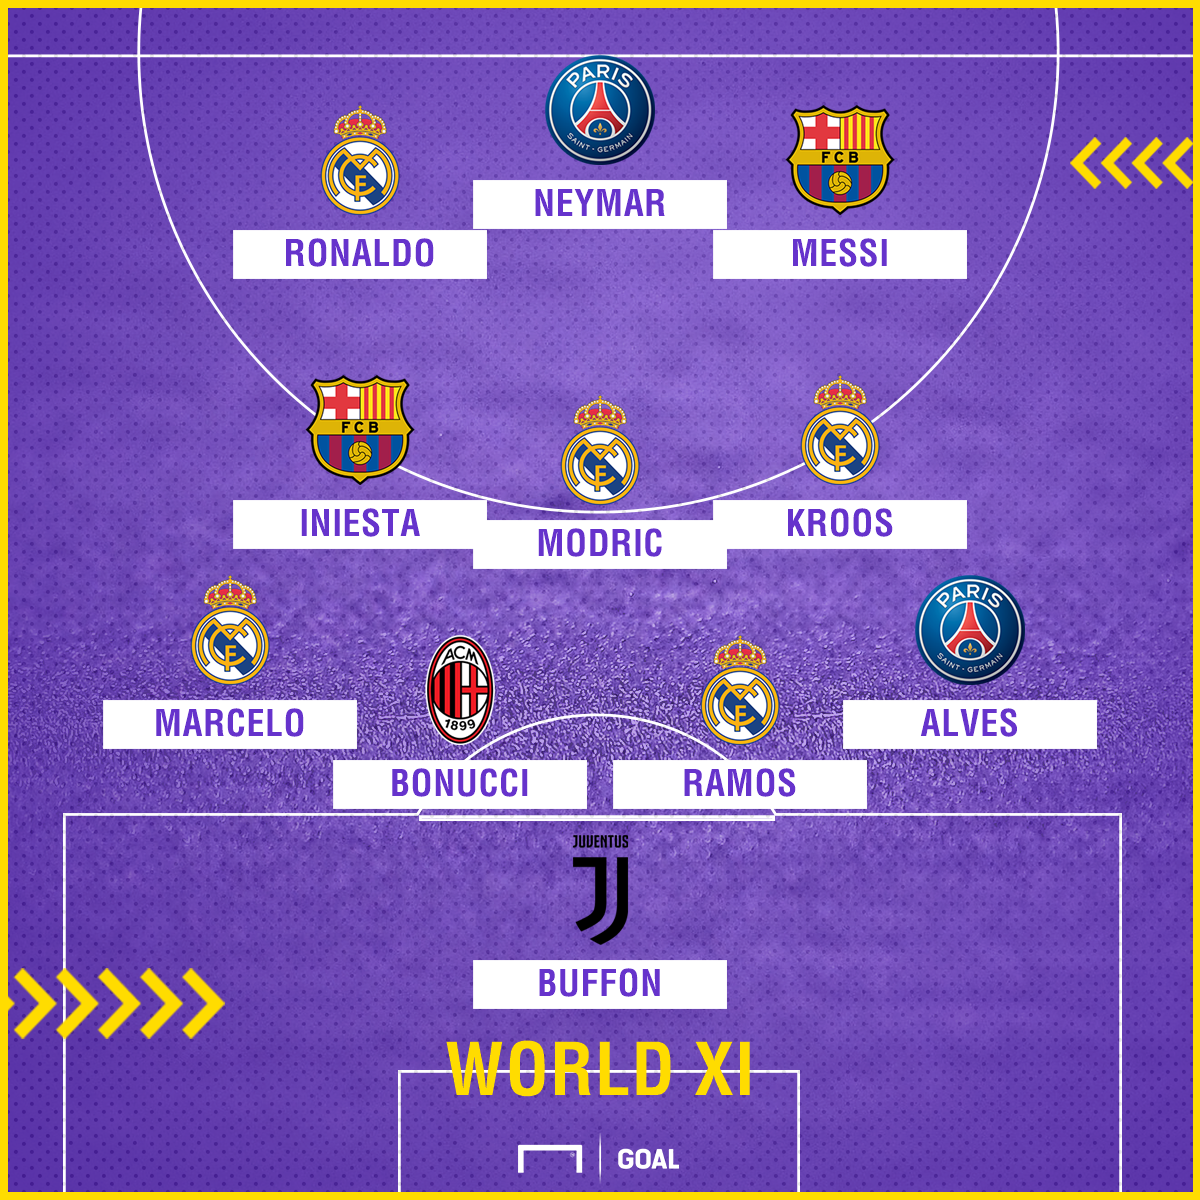 fifpro world 11 messi ronaldo headline world s best team yet